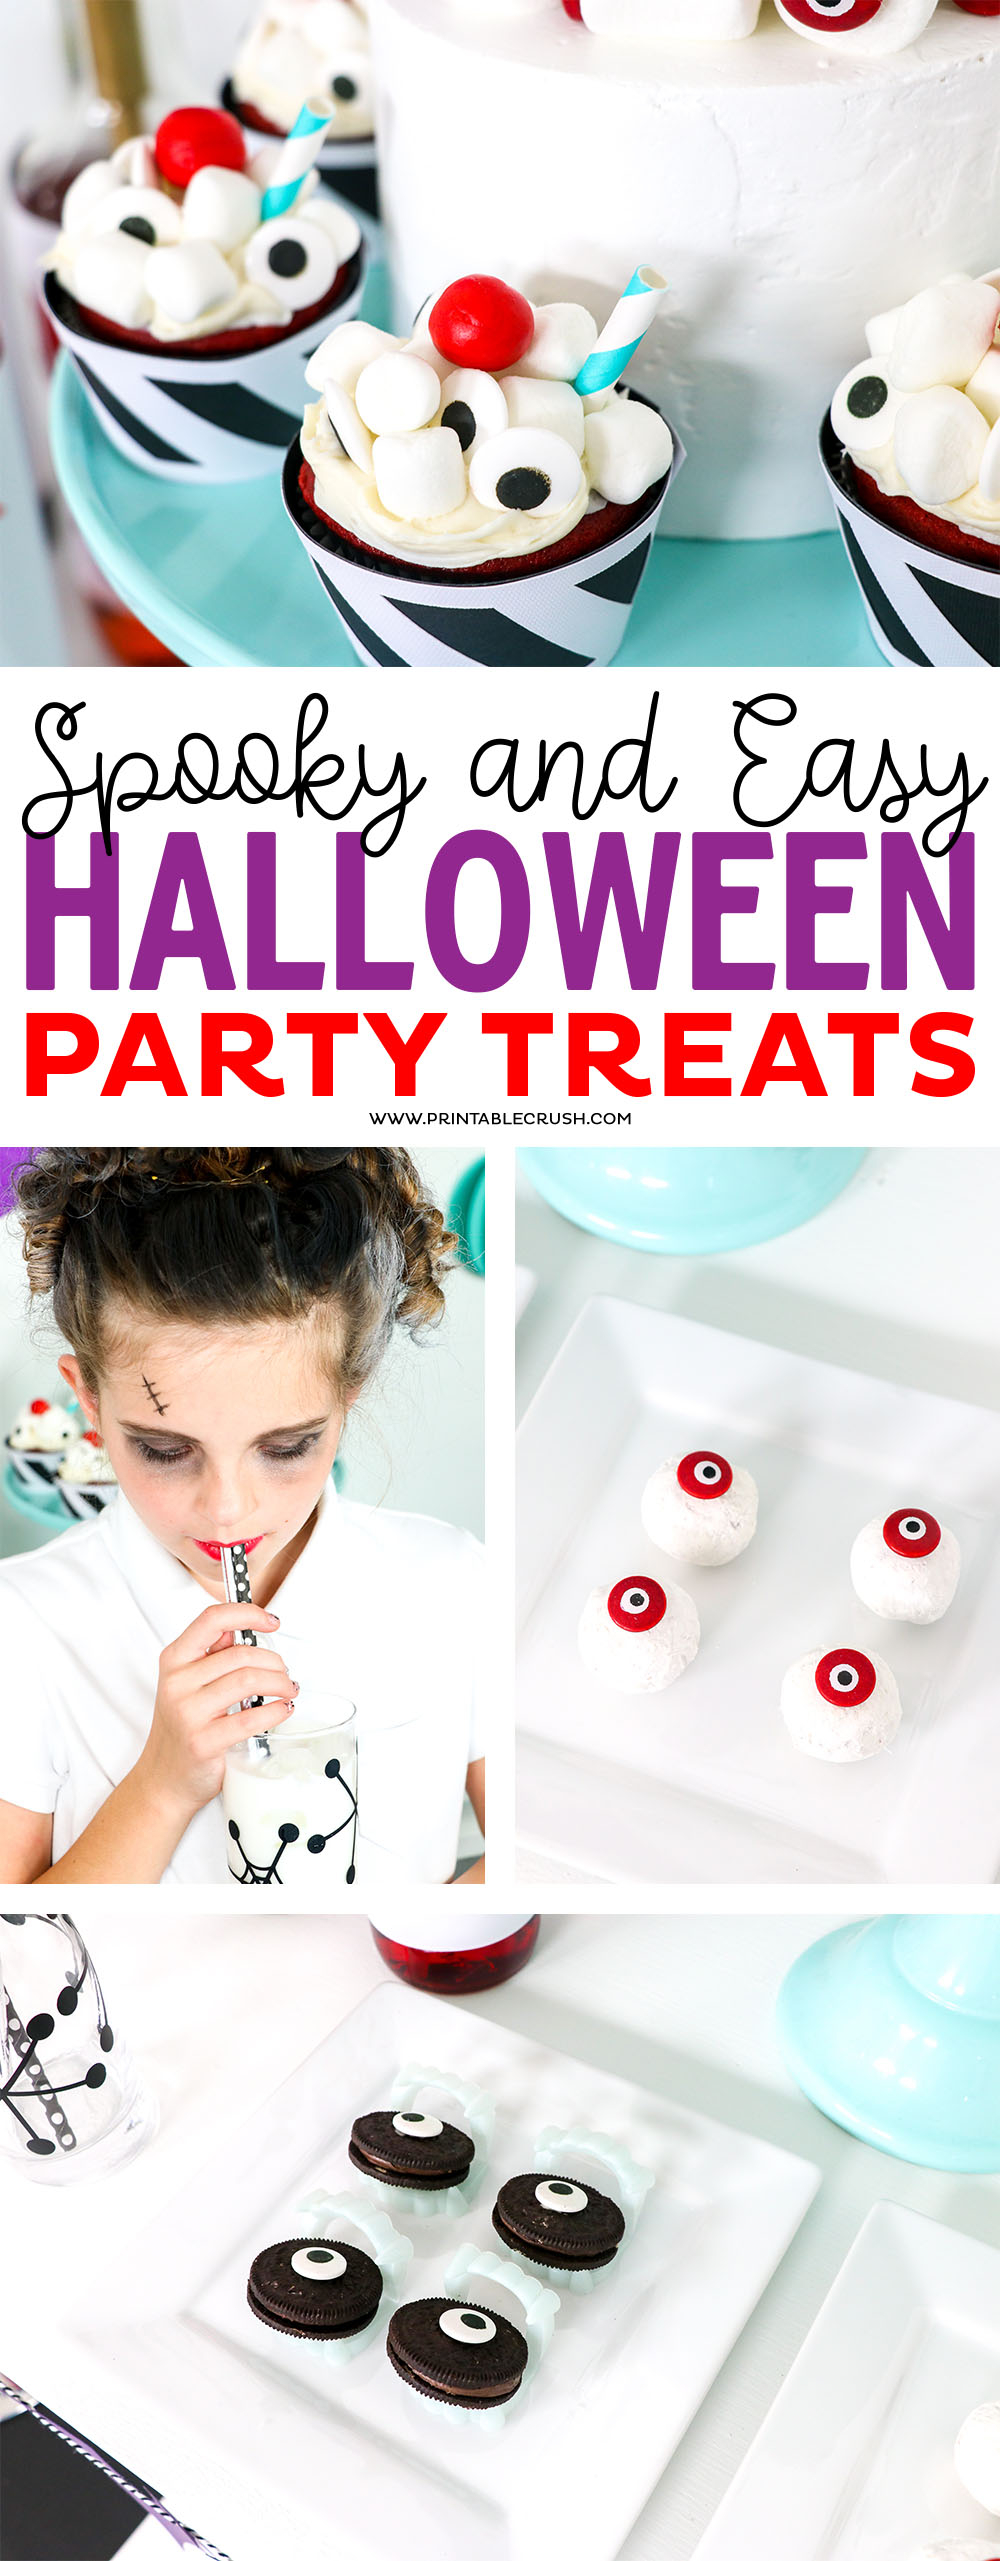 Make these Spooky and Easy Halloween Treats for your Soda Shop Halloween Party! #halloween #halloweentreats #halloweenparty via @printablecrush